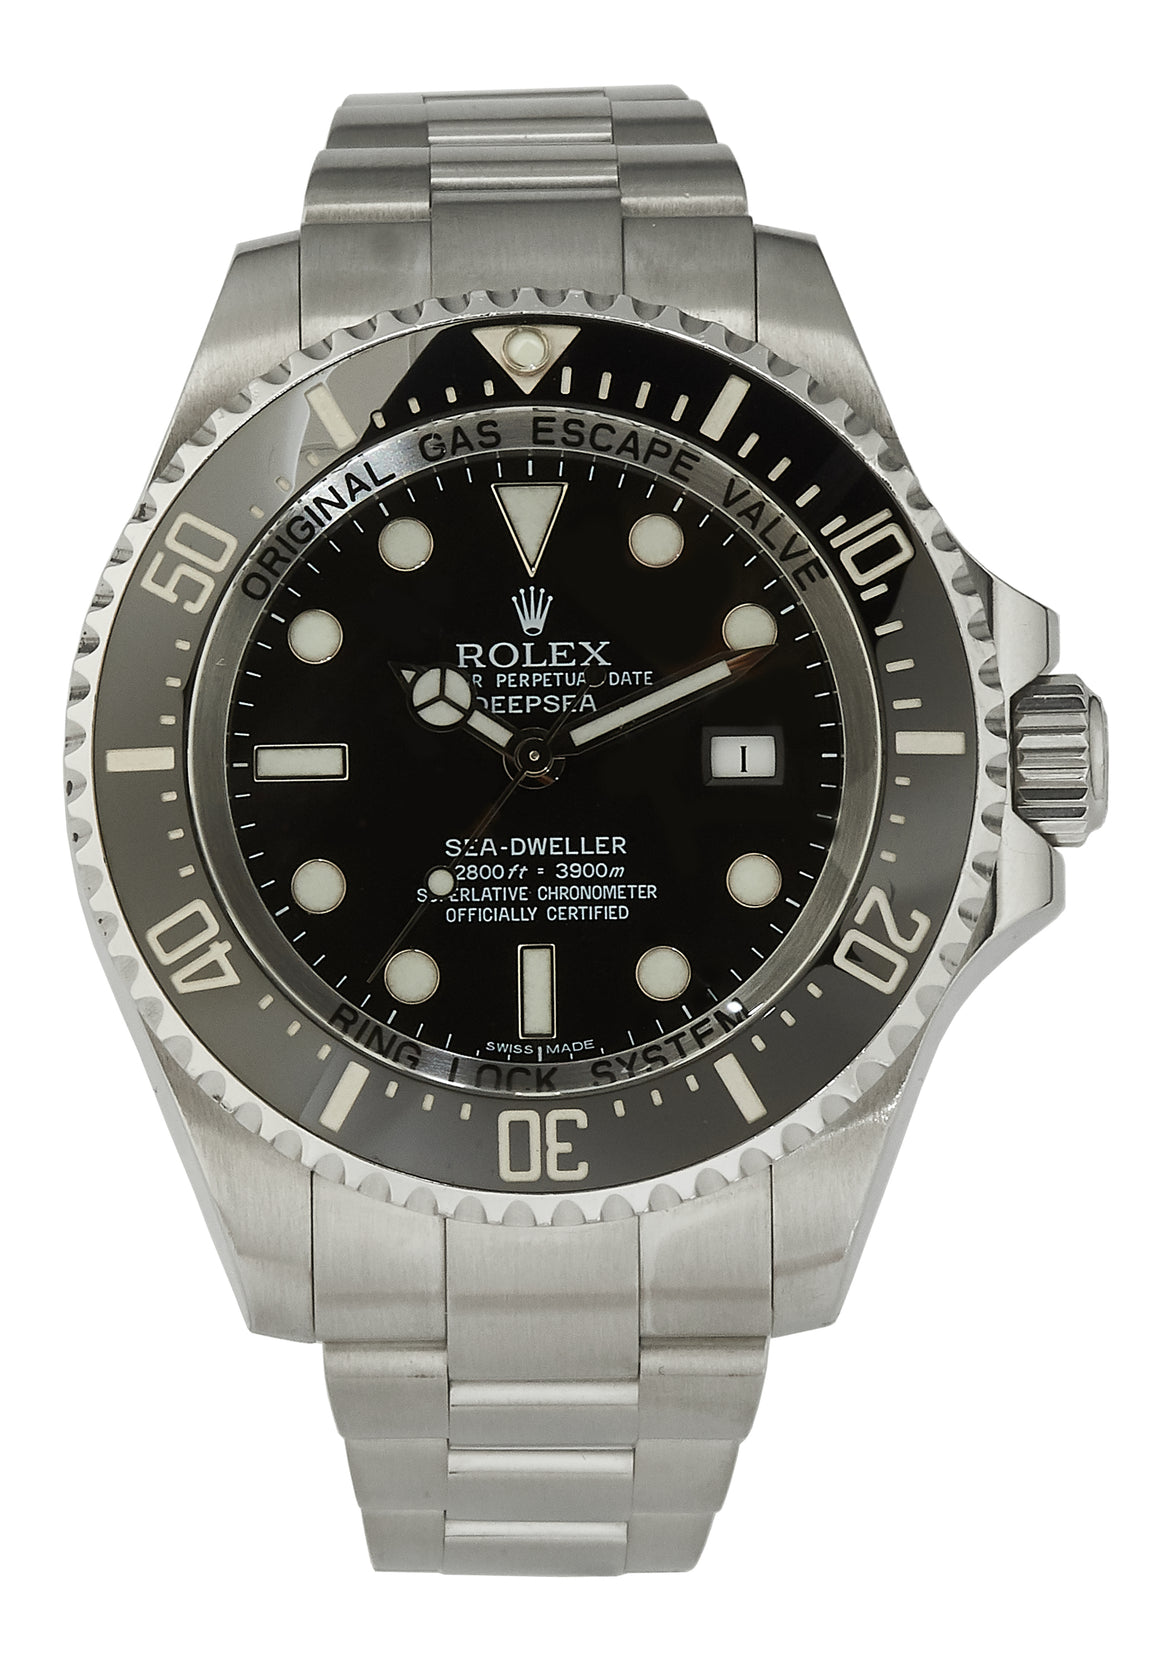 Rolex Sea-Dweller Deepsea, Box & Papers, 2010